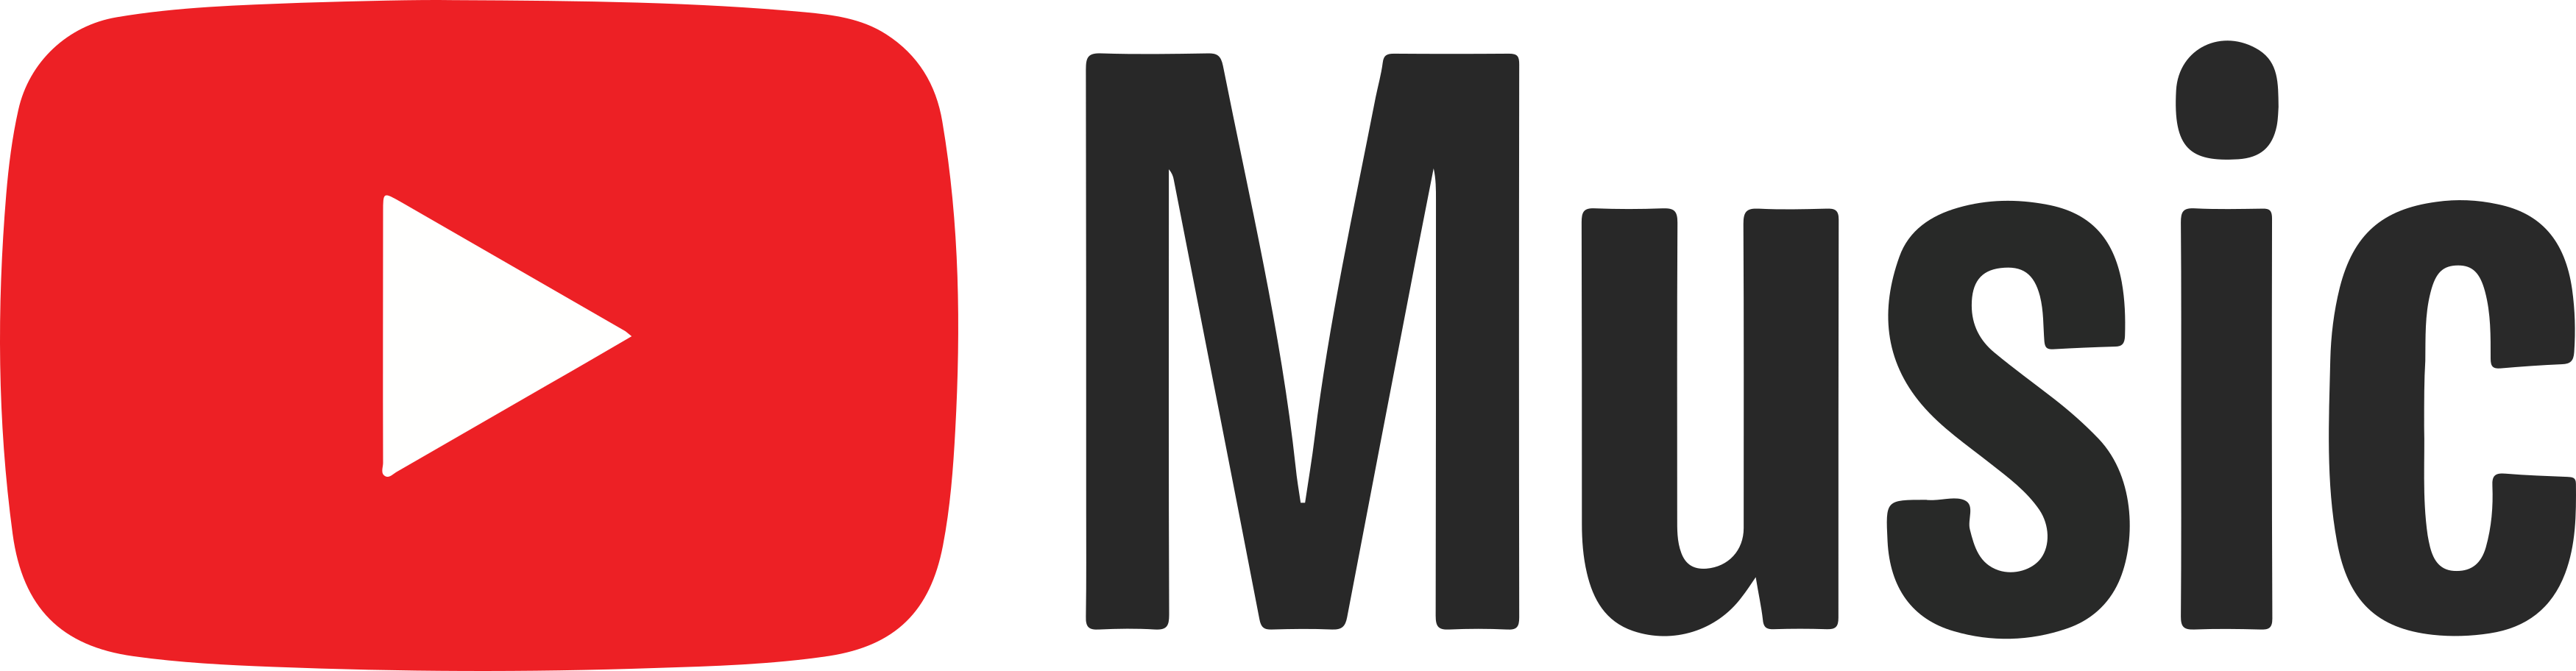 youtube-music-logo-light-1